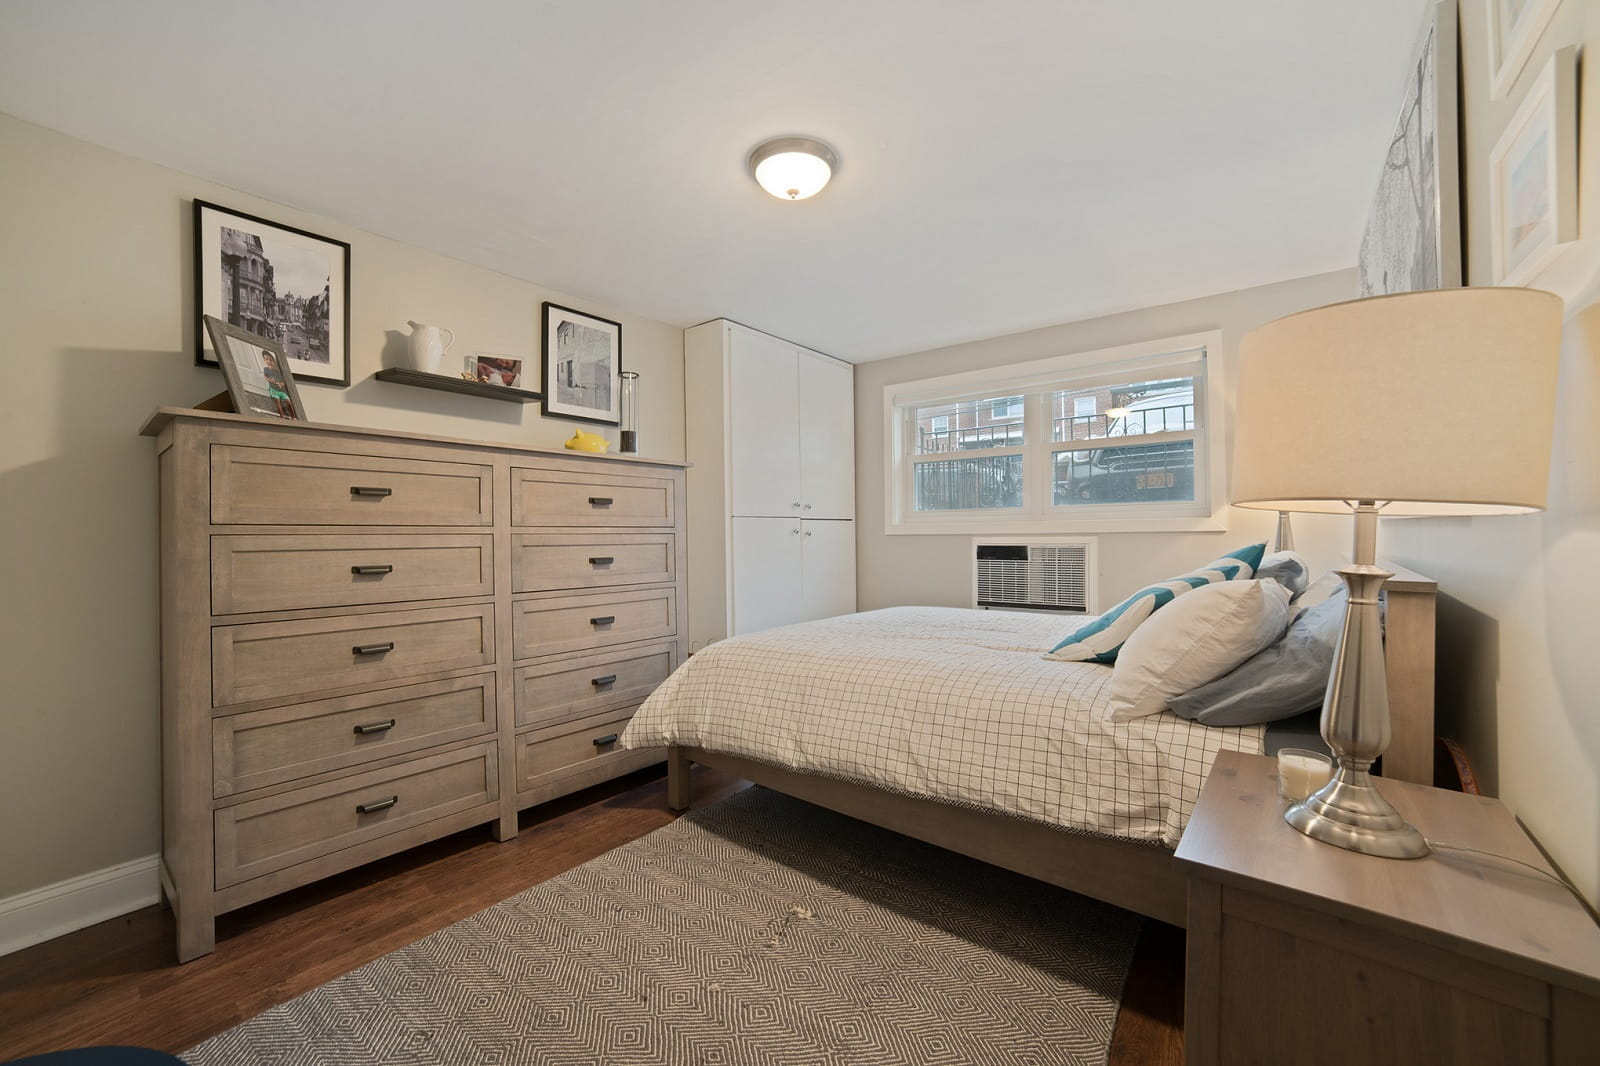 Real Estate Photography in Bronx - New York - USA - Bedroom View